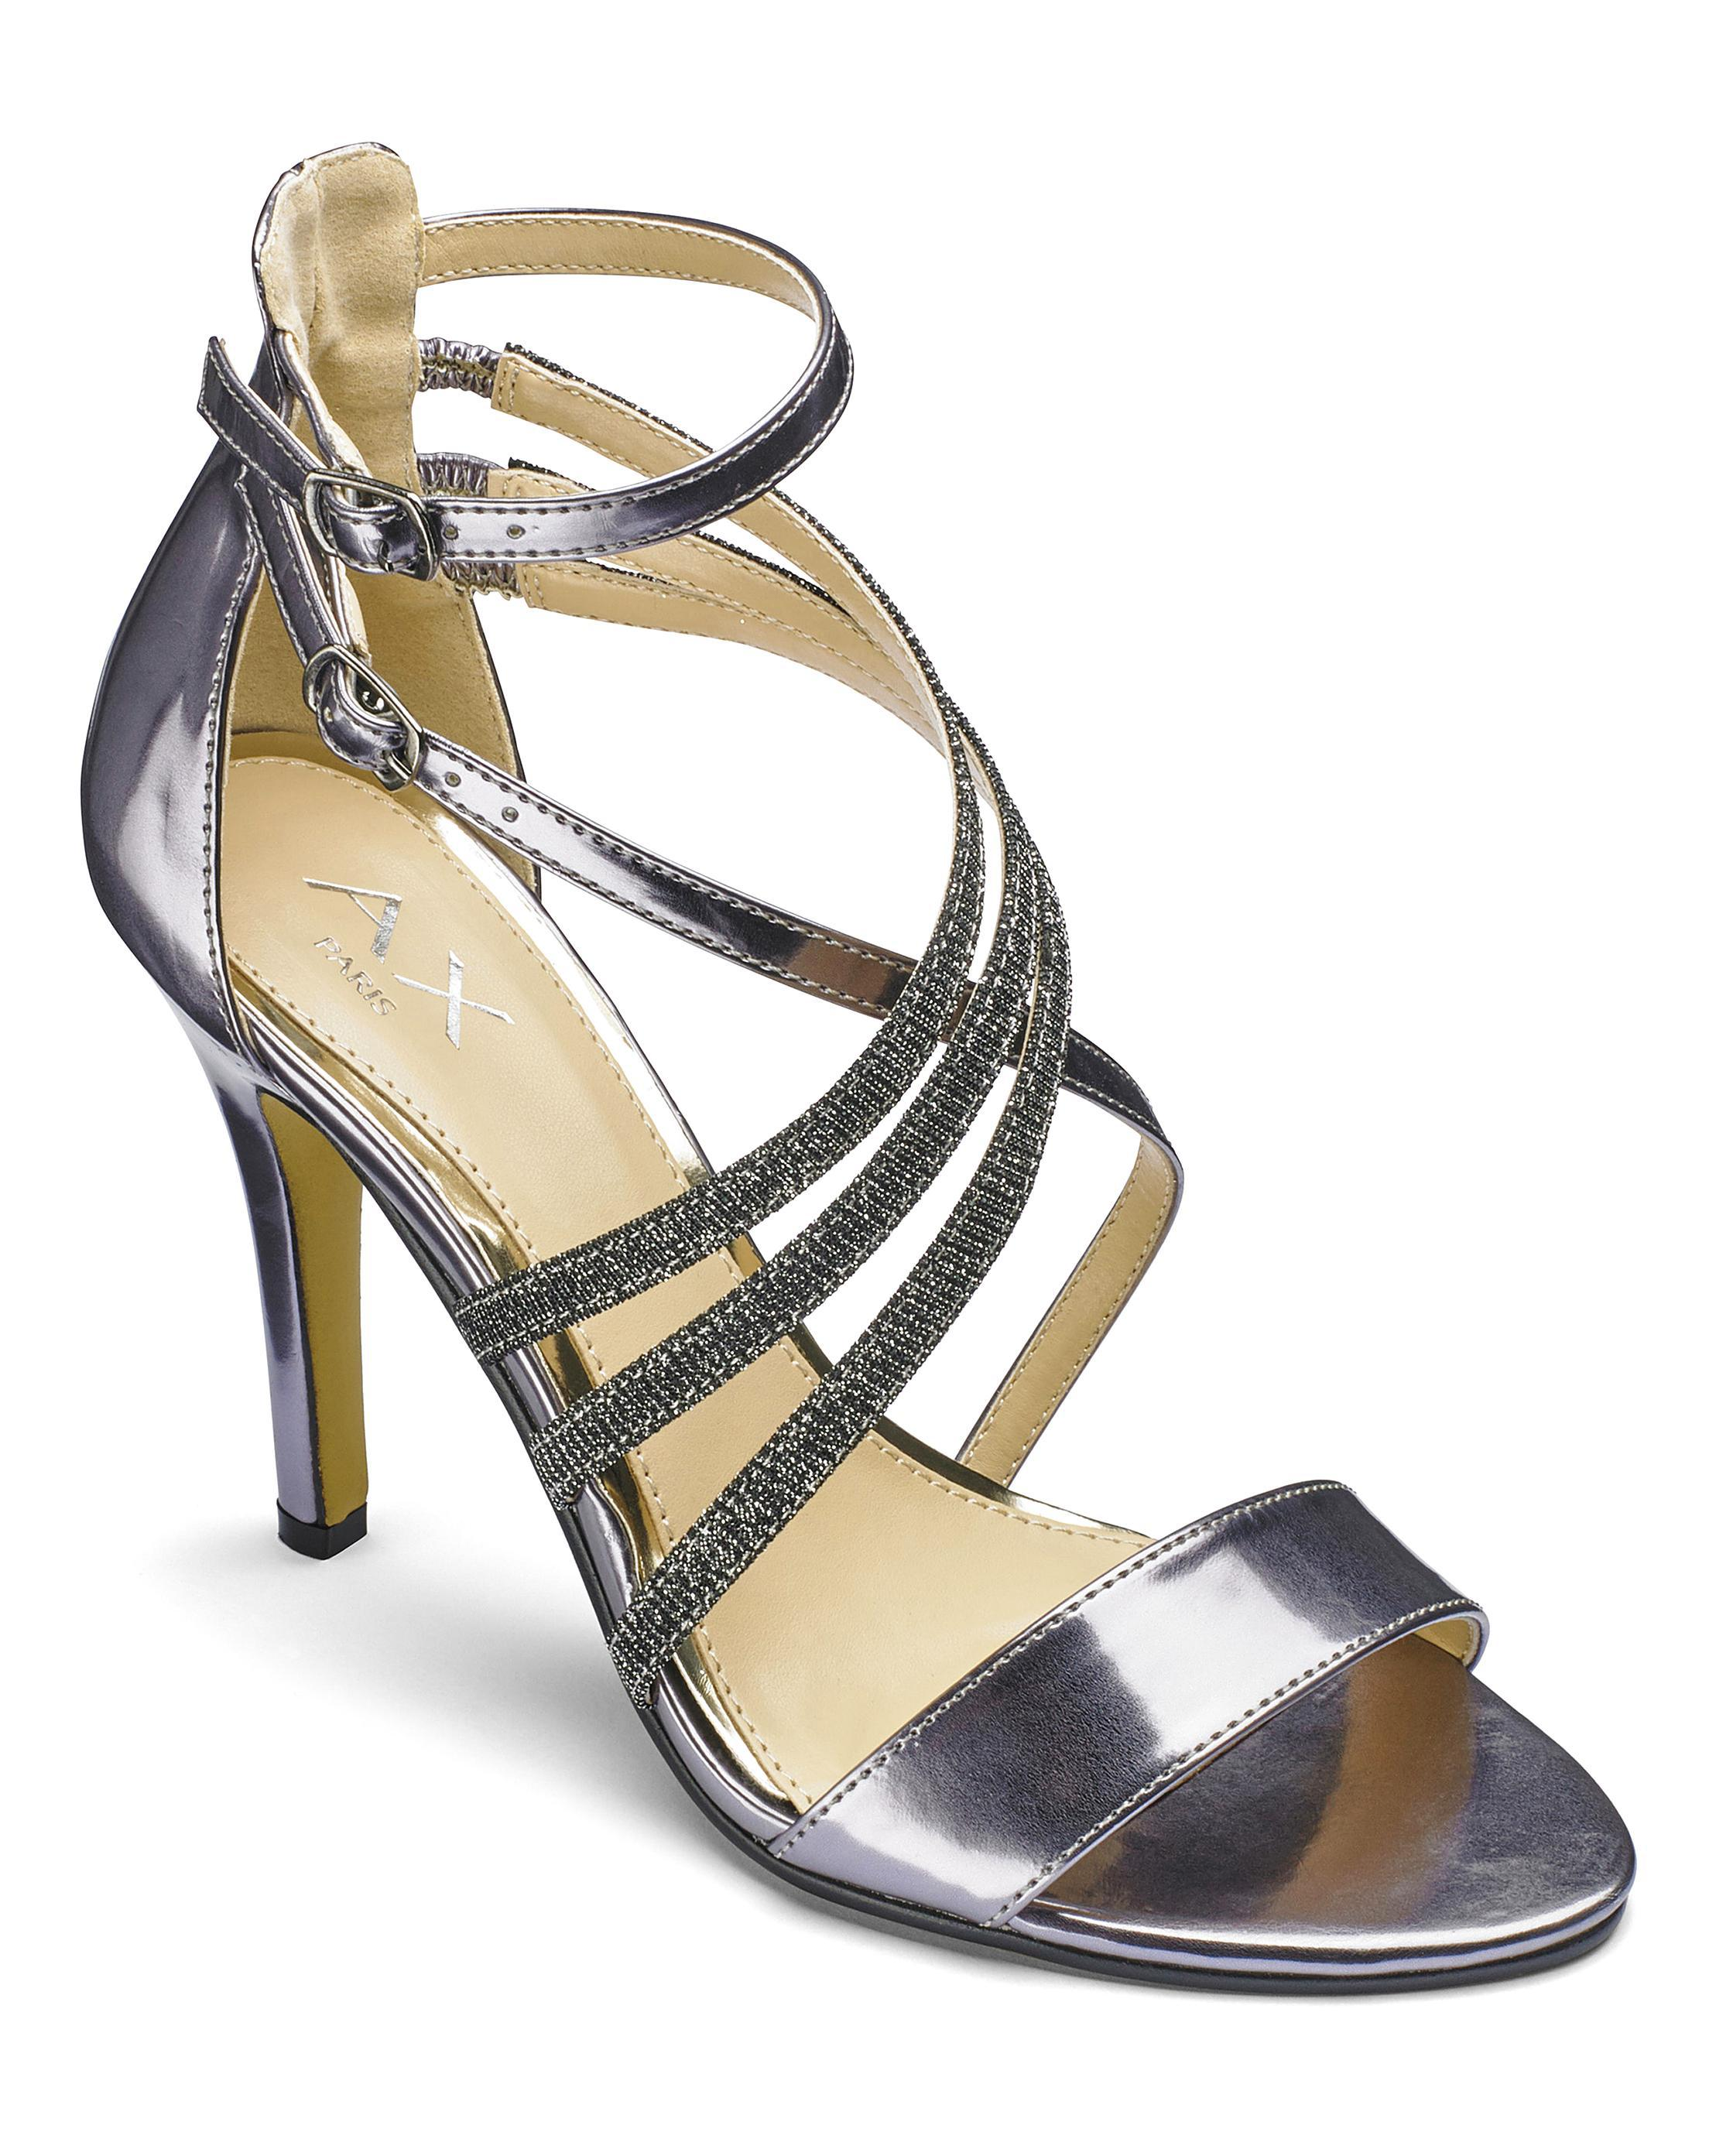 27f8d27a8de Lyst - Simply Be Ax Paris Strappy Sandals in Gray